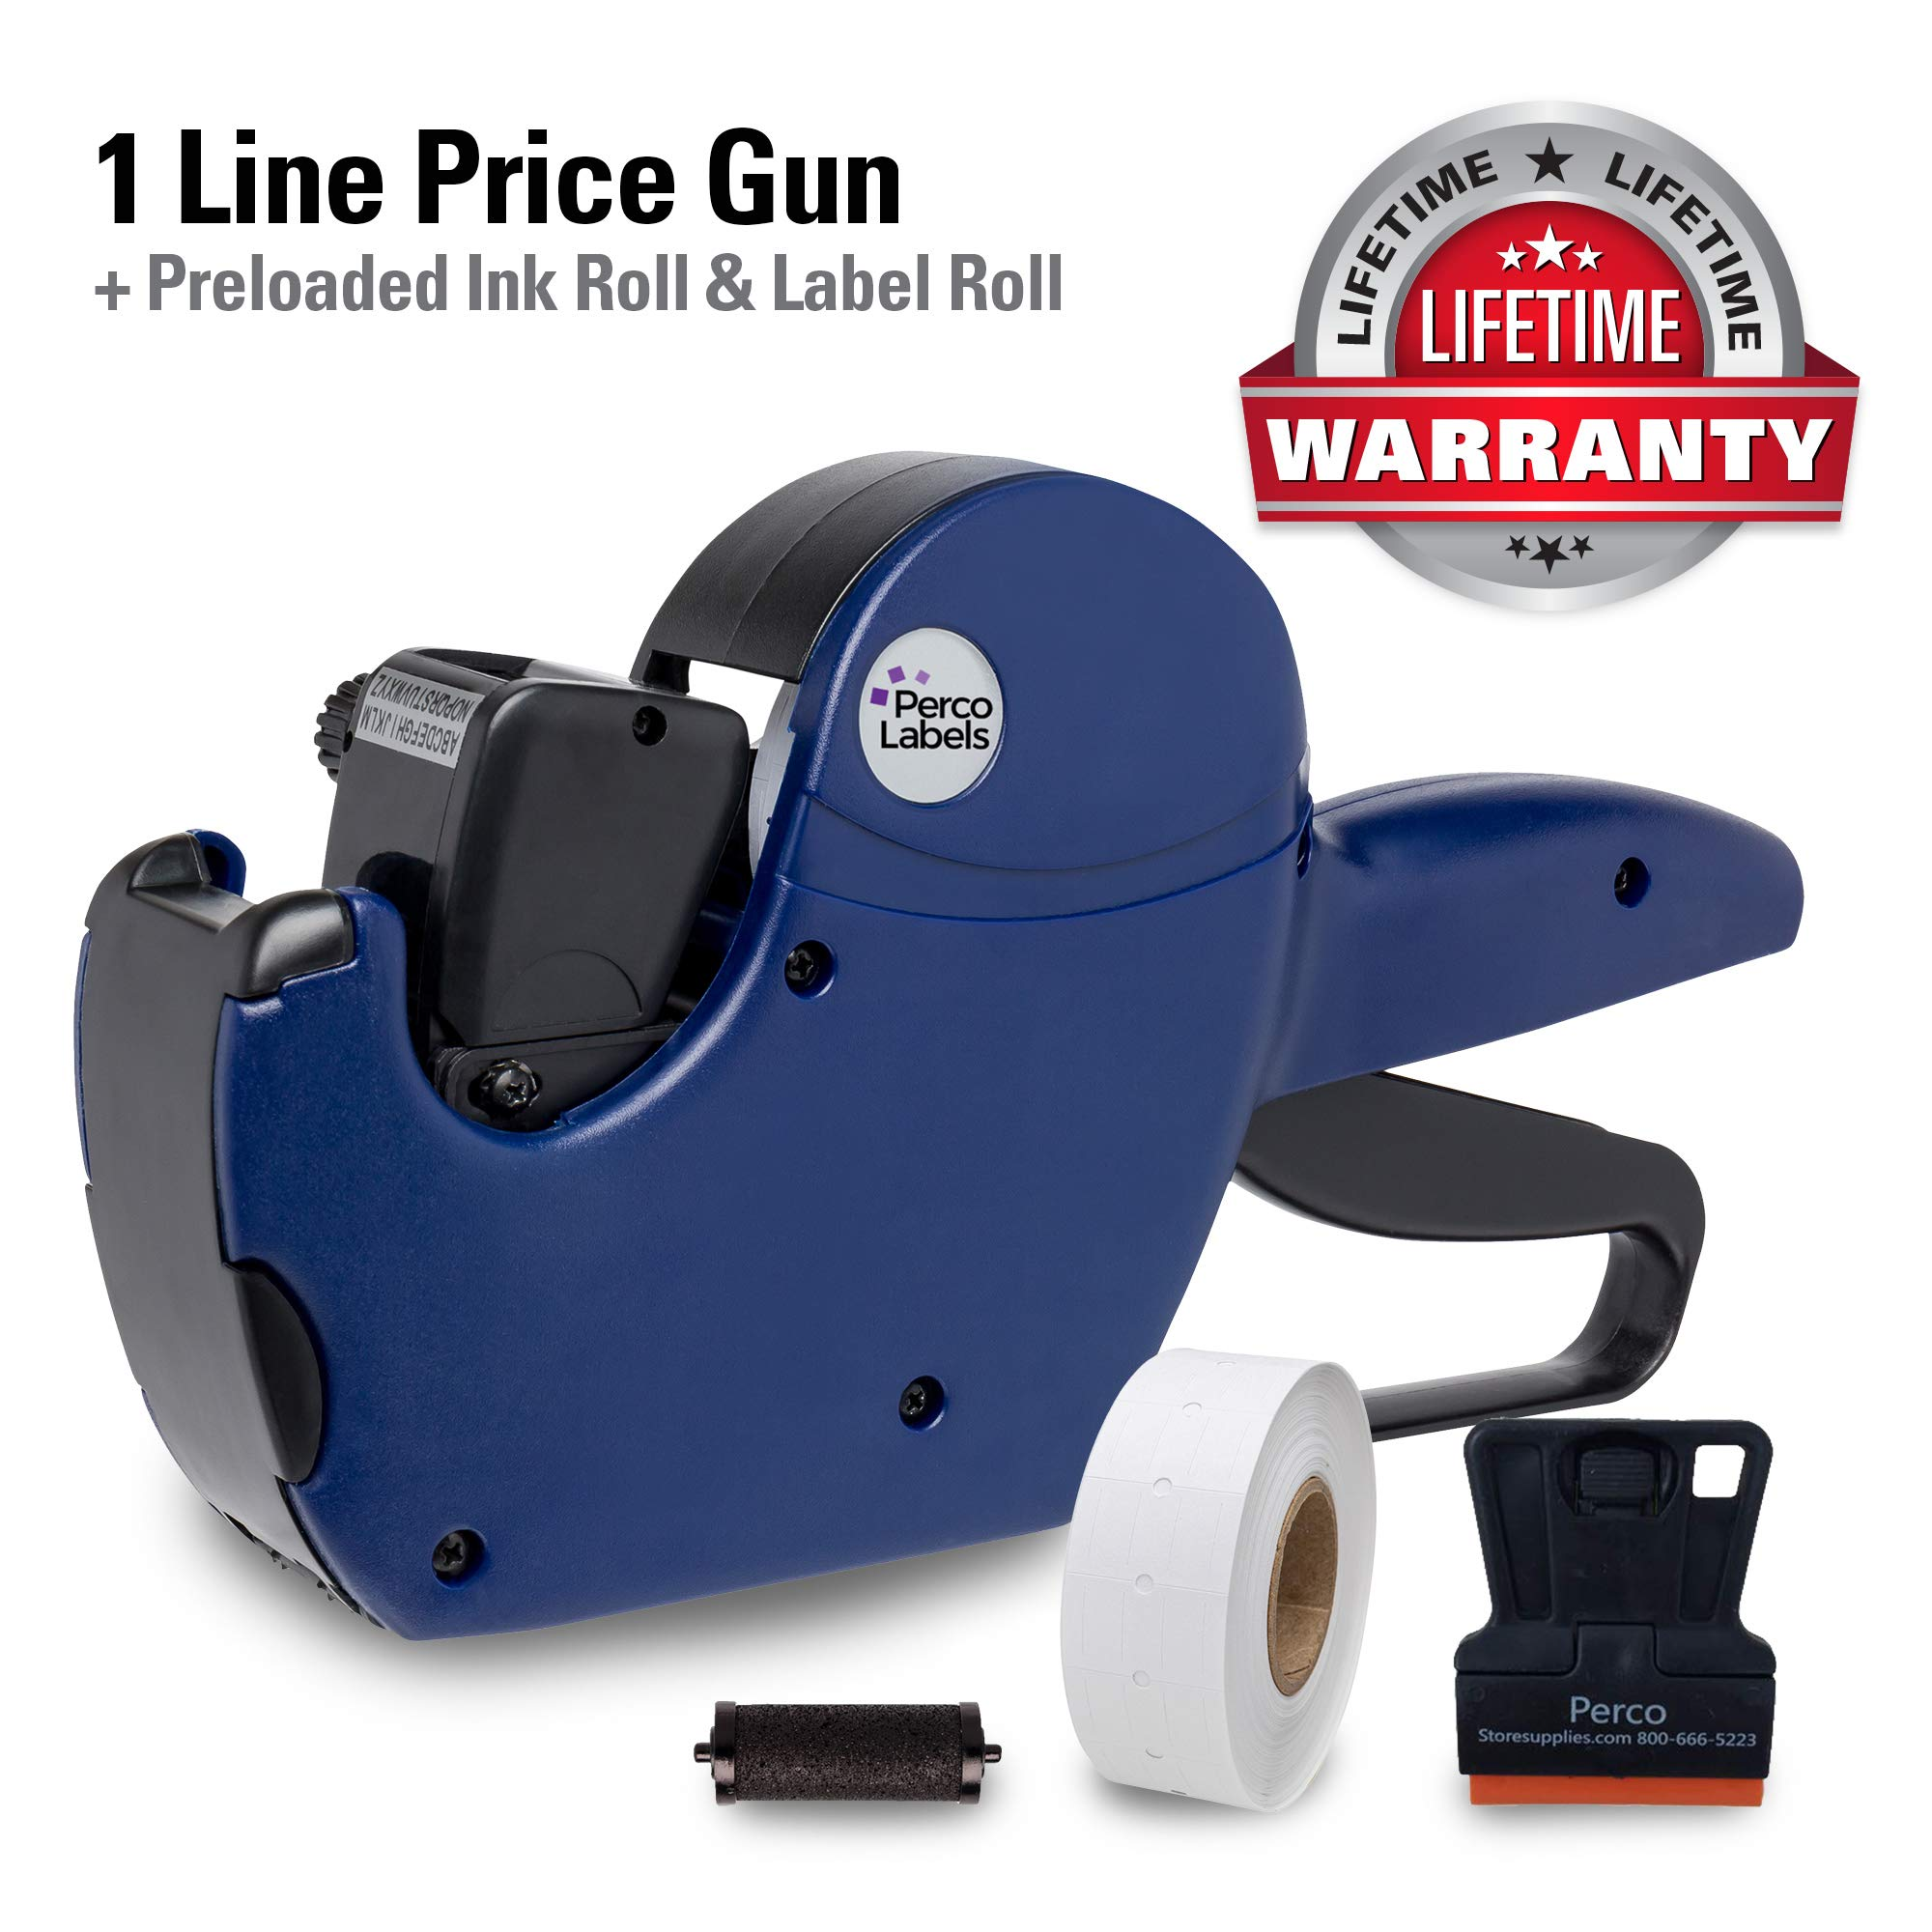 Perco 1 Line Price Gun with Labels - Includes 1 Line Pricing Gun, 1,000 White Labels, and Pre-Loaded Ink Roll by Perco